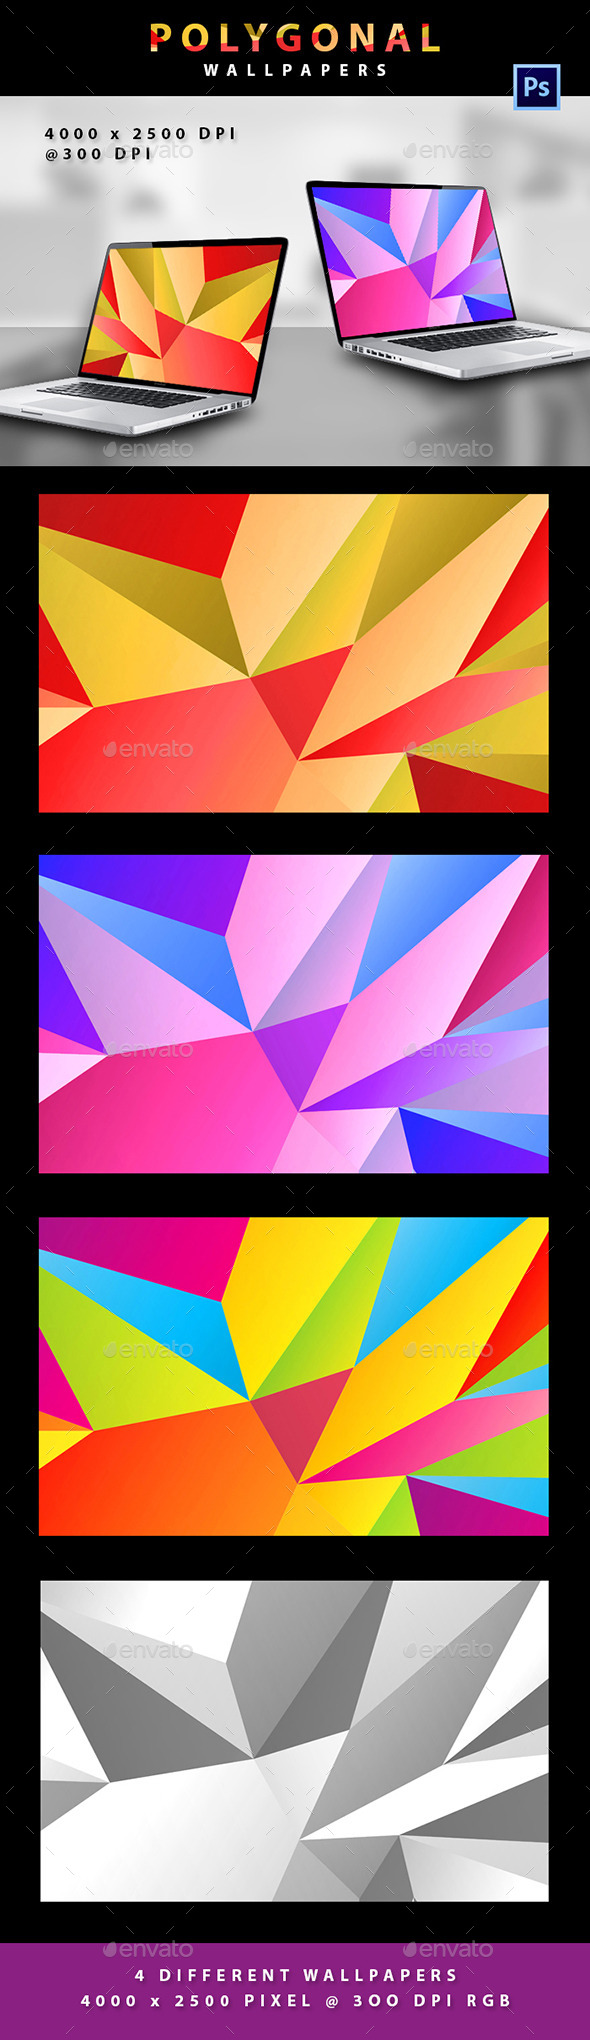 Polygonal Wallpaper - Abstract Backgrounds